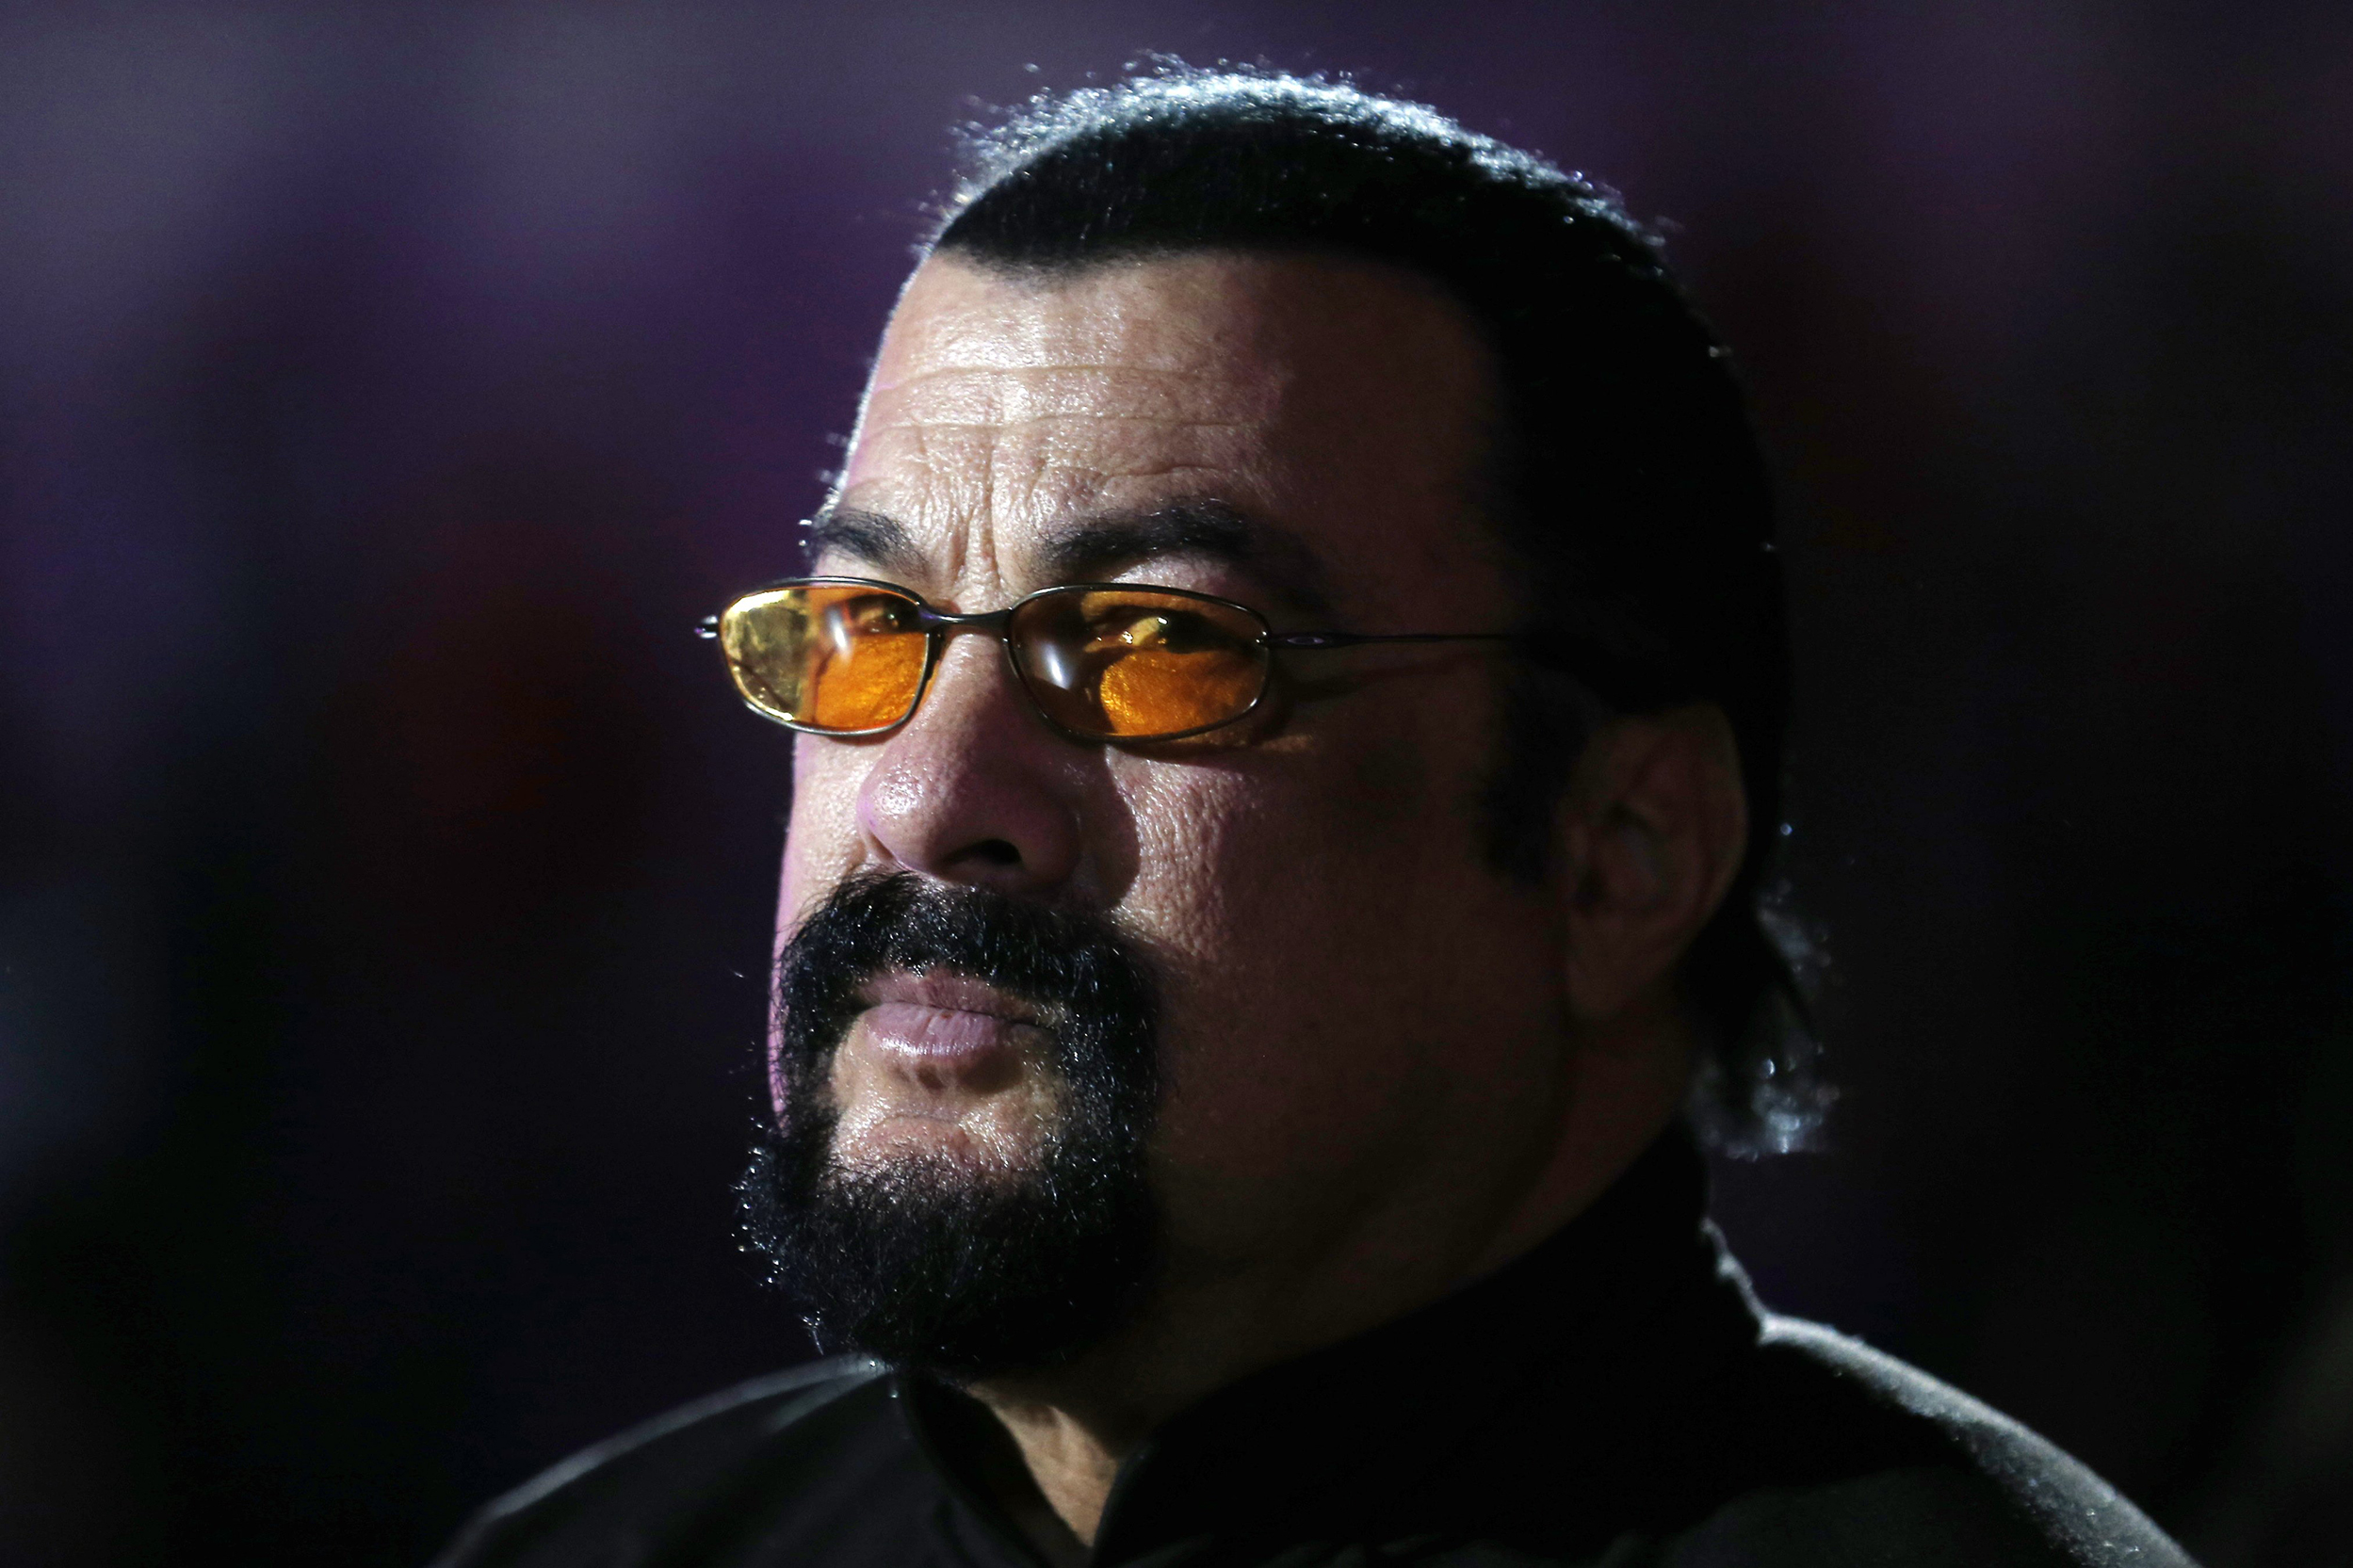 Steven Seagal sexually assaulted me at audition, former model claims